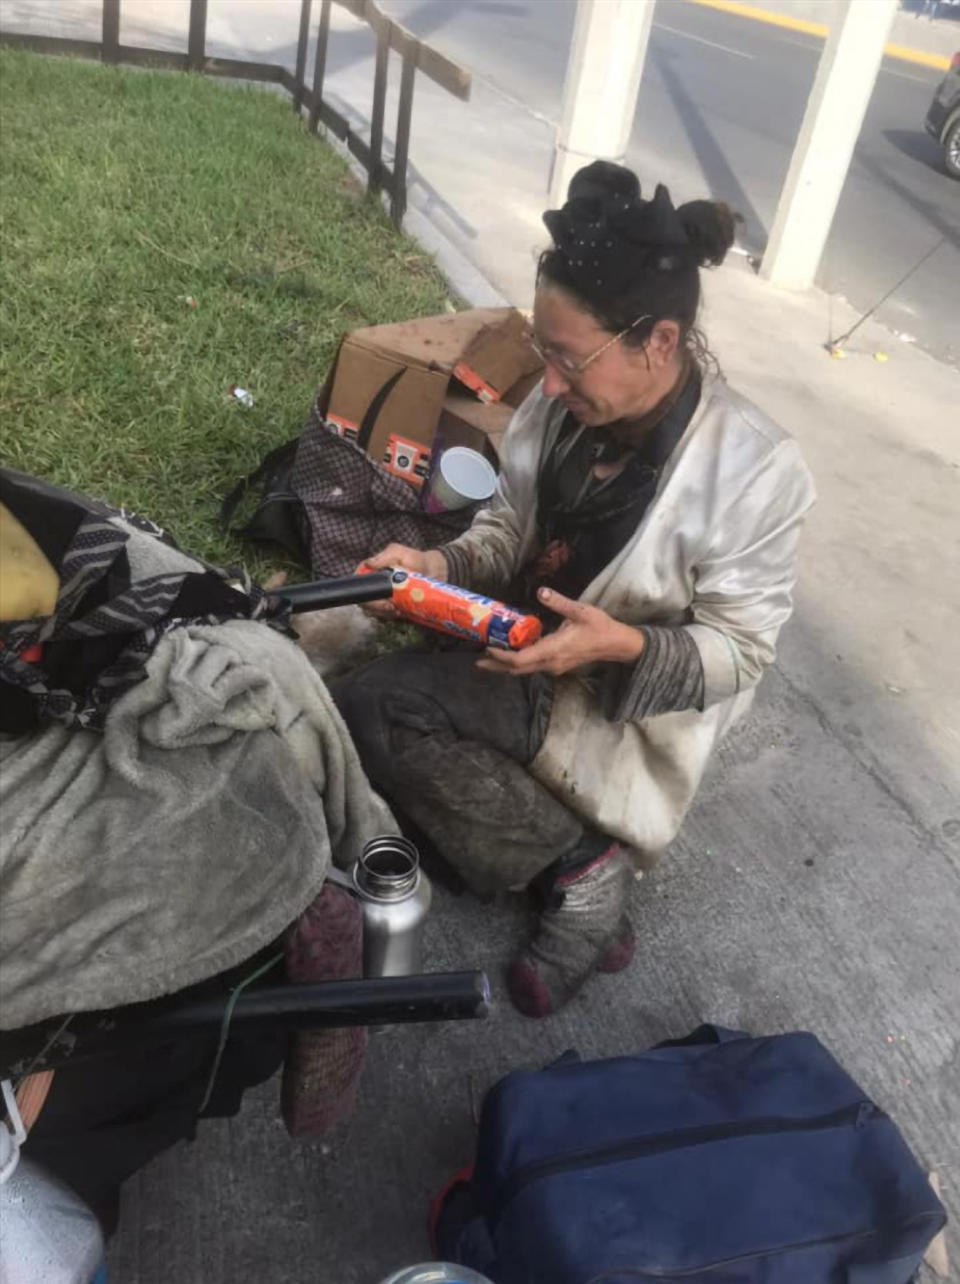 The homeless woman who claimed to be Jane McDonald-Crone. Source: Newsflash/Australscope